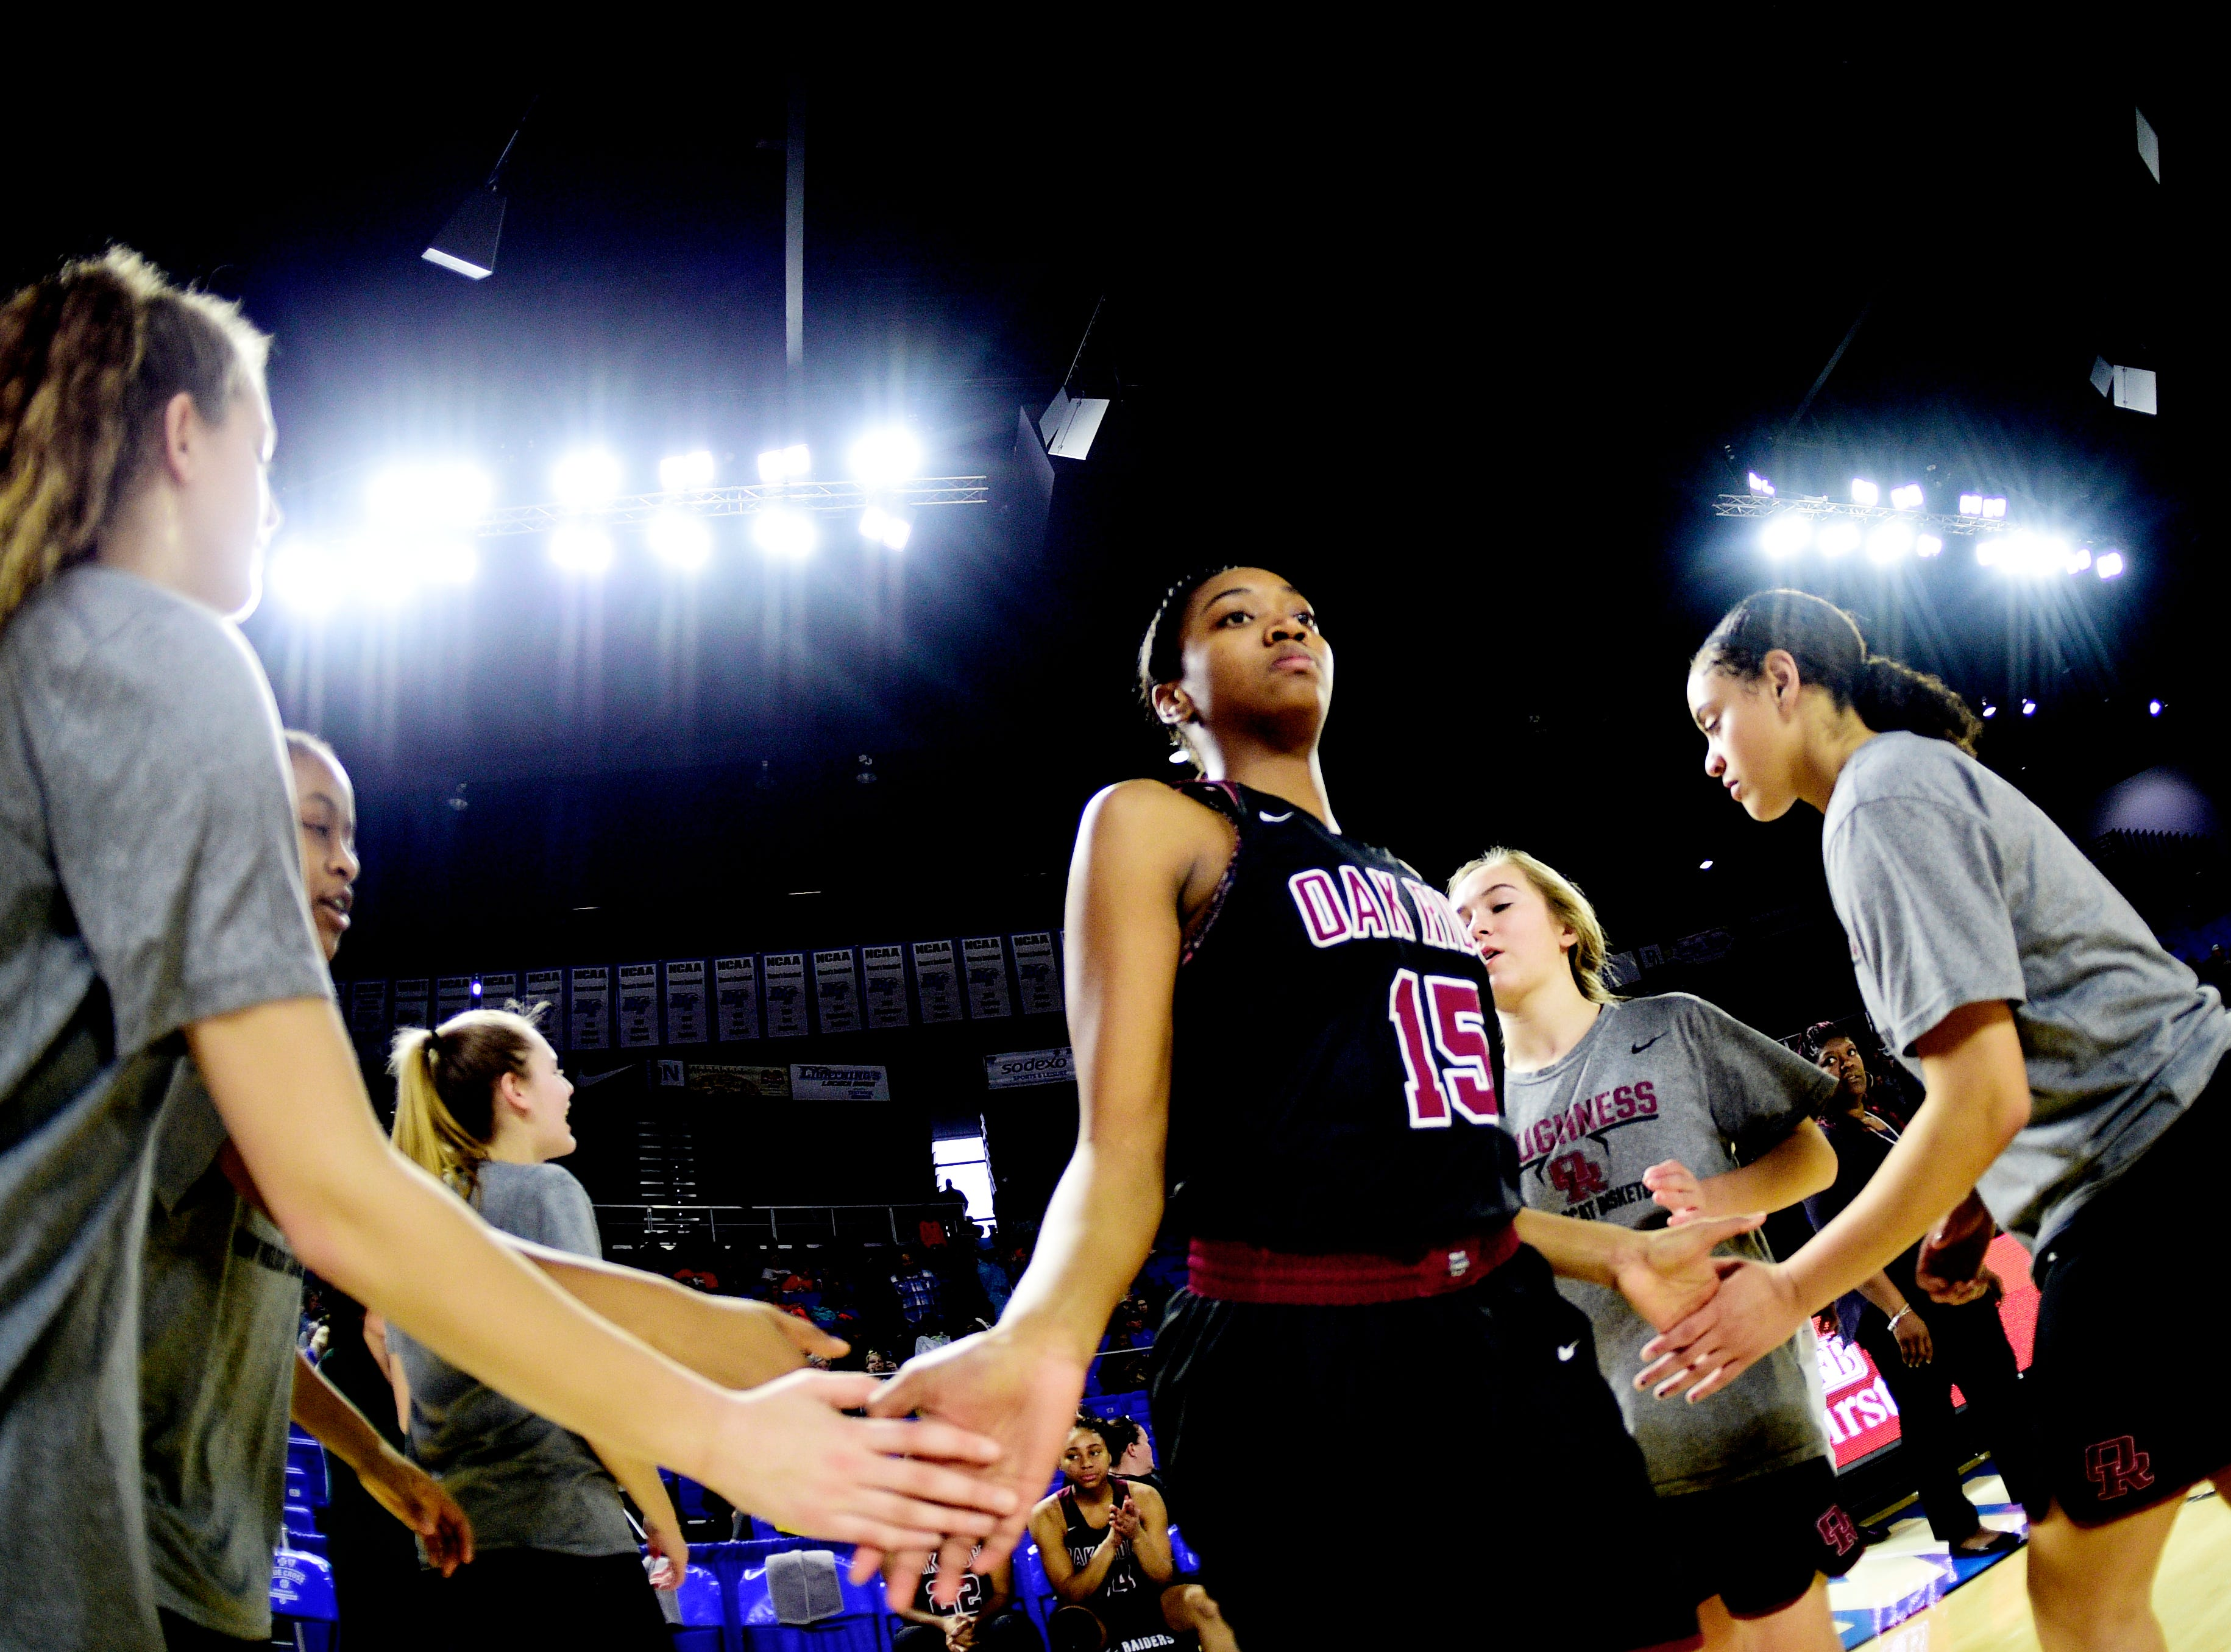 Oak Ridge's Raja Eckles (15) is introduced during a game between Oak Ridge and Bradley Central at the TSSAA girls state tournament at the Murphy Center in Murfreesboro, Tennessee on Friday, March 8, 2019.